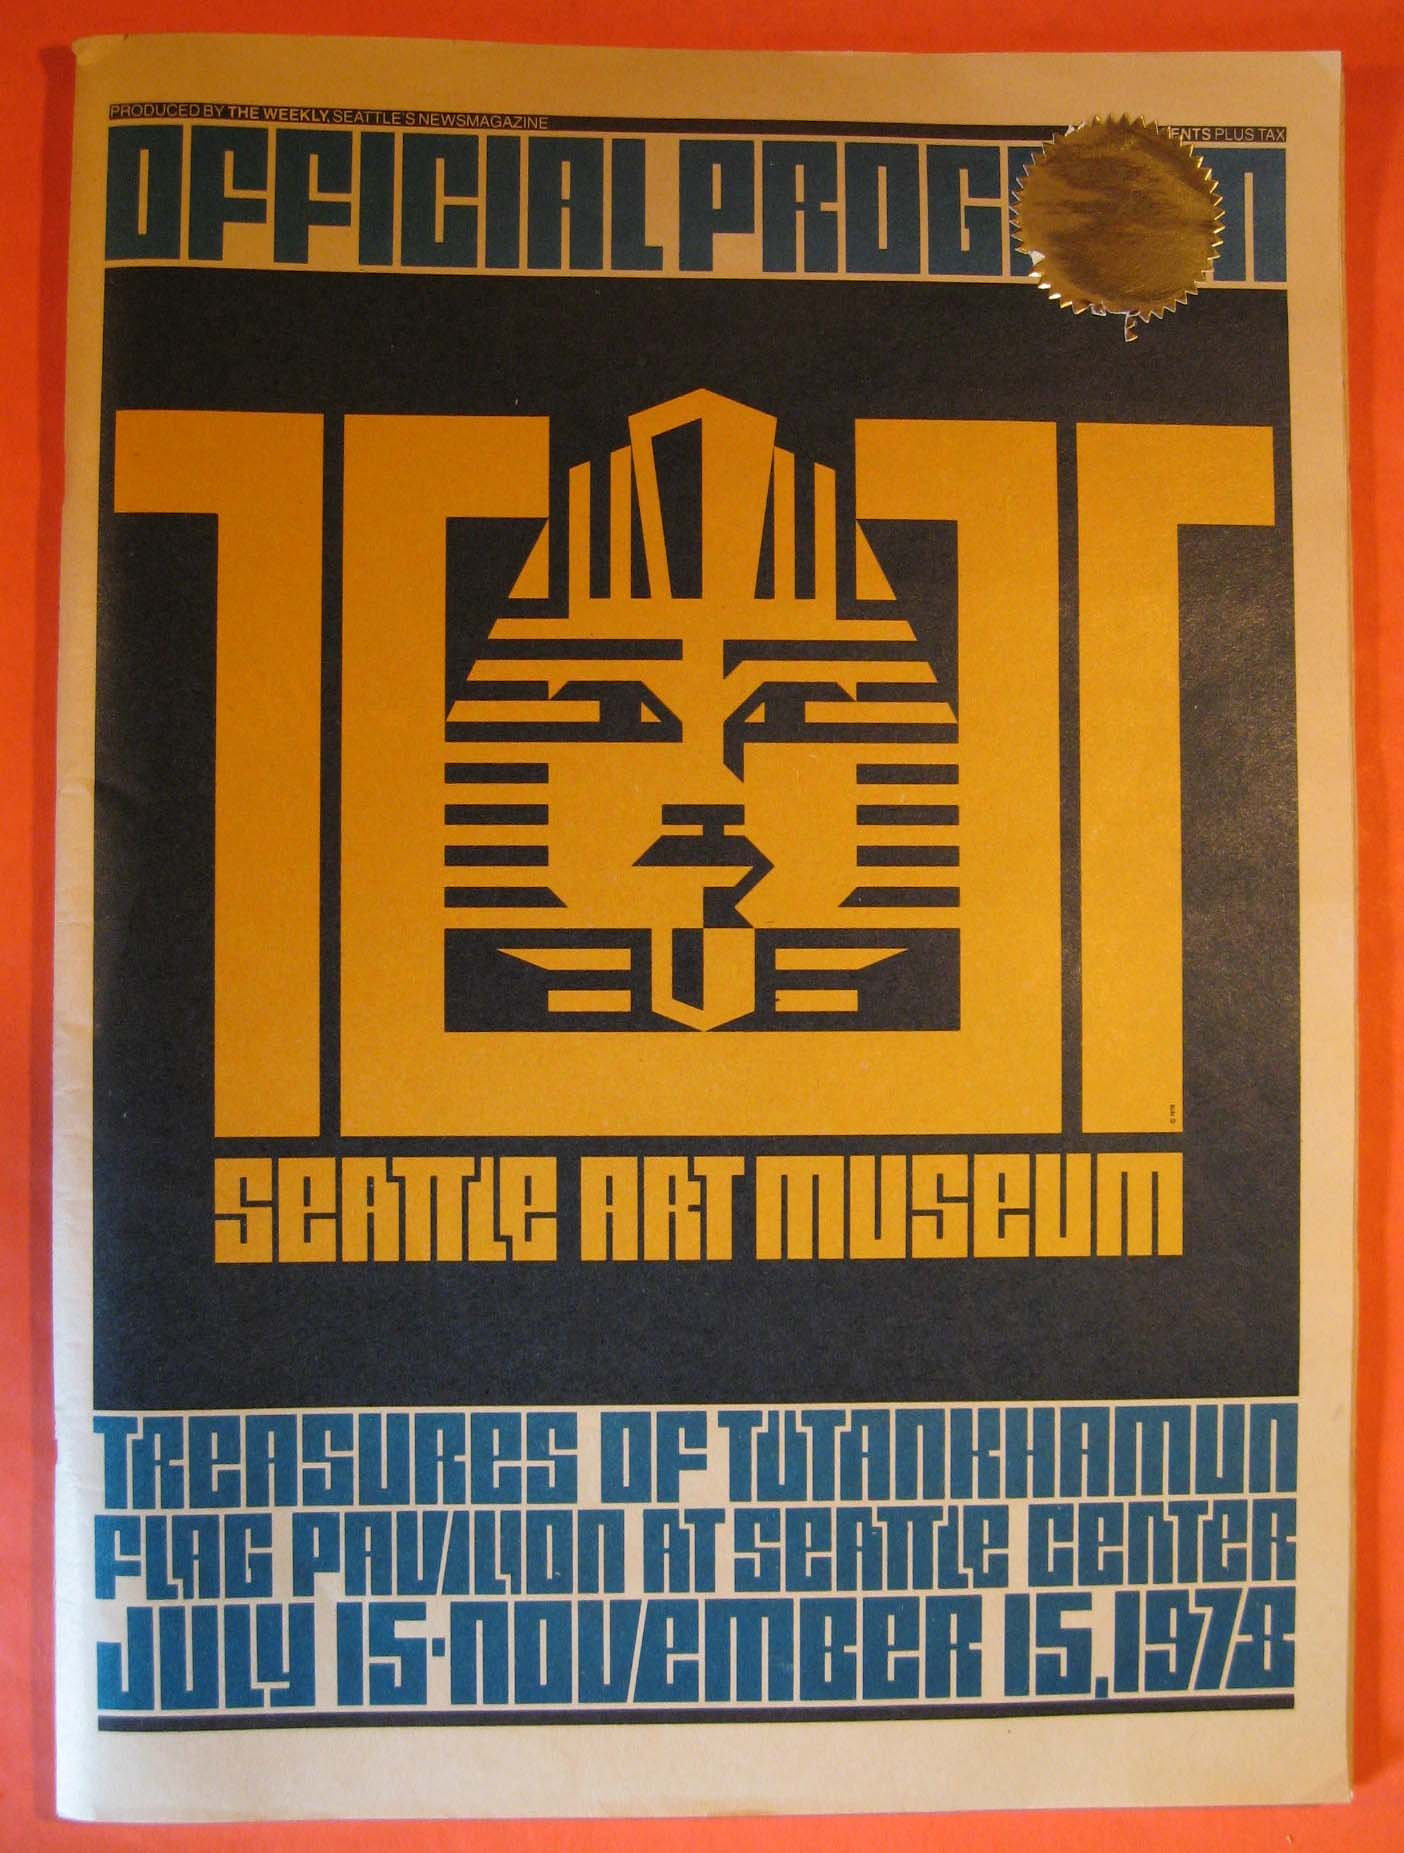 Image for Official Program: Tut:  Seattle Art Museum: Treasures of Tutankhamun Flag Pavilion at Seattle Center July 15 - November 15, 1978